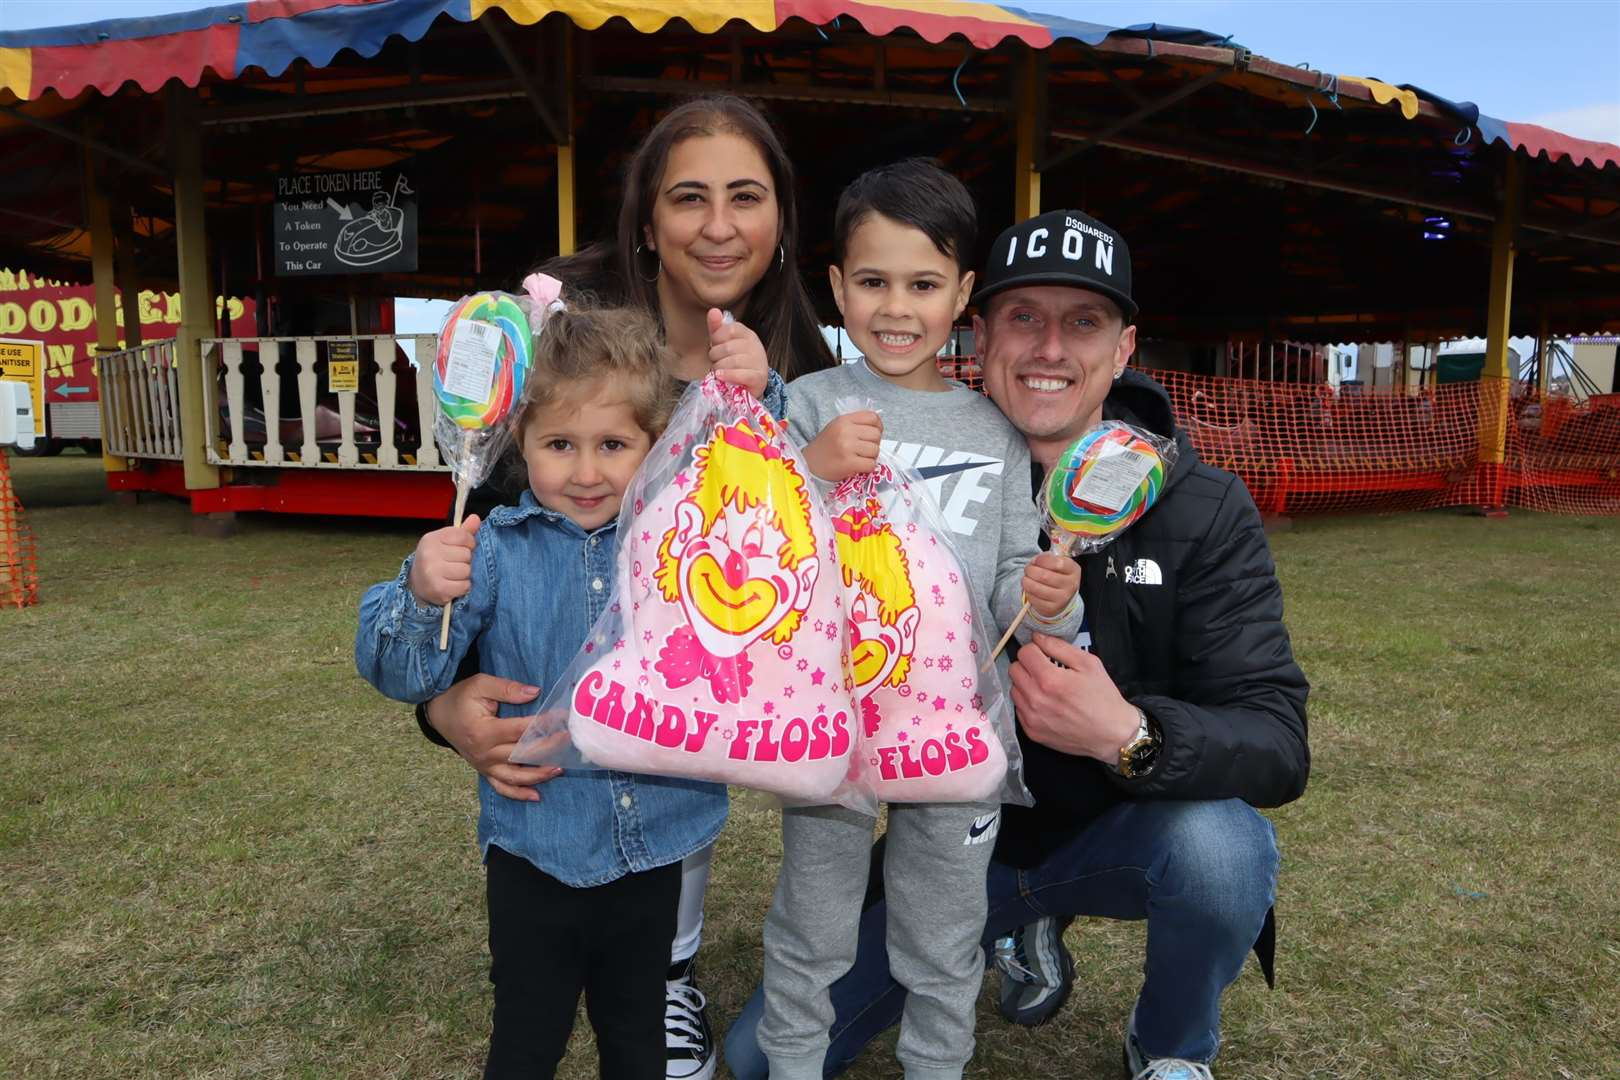 Everyone ended up with free candyfloss at Smith's funfair, Barton's Point, Sheerness. Here youngsters Elizabeth, 3, and Olly, 5, tuck into their treat with mum Elmaz Mehmet and dad Billy McPhail